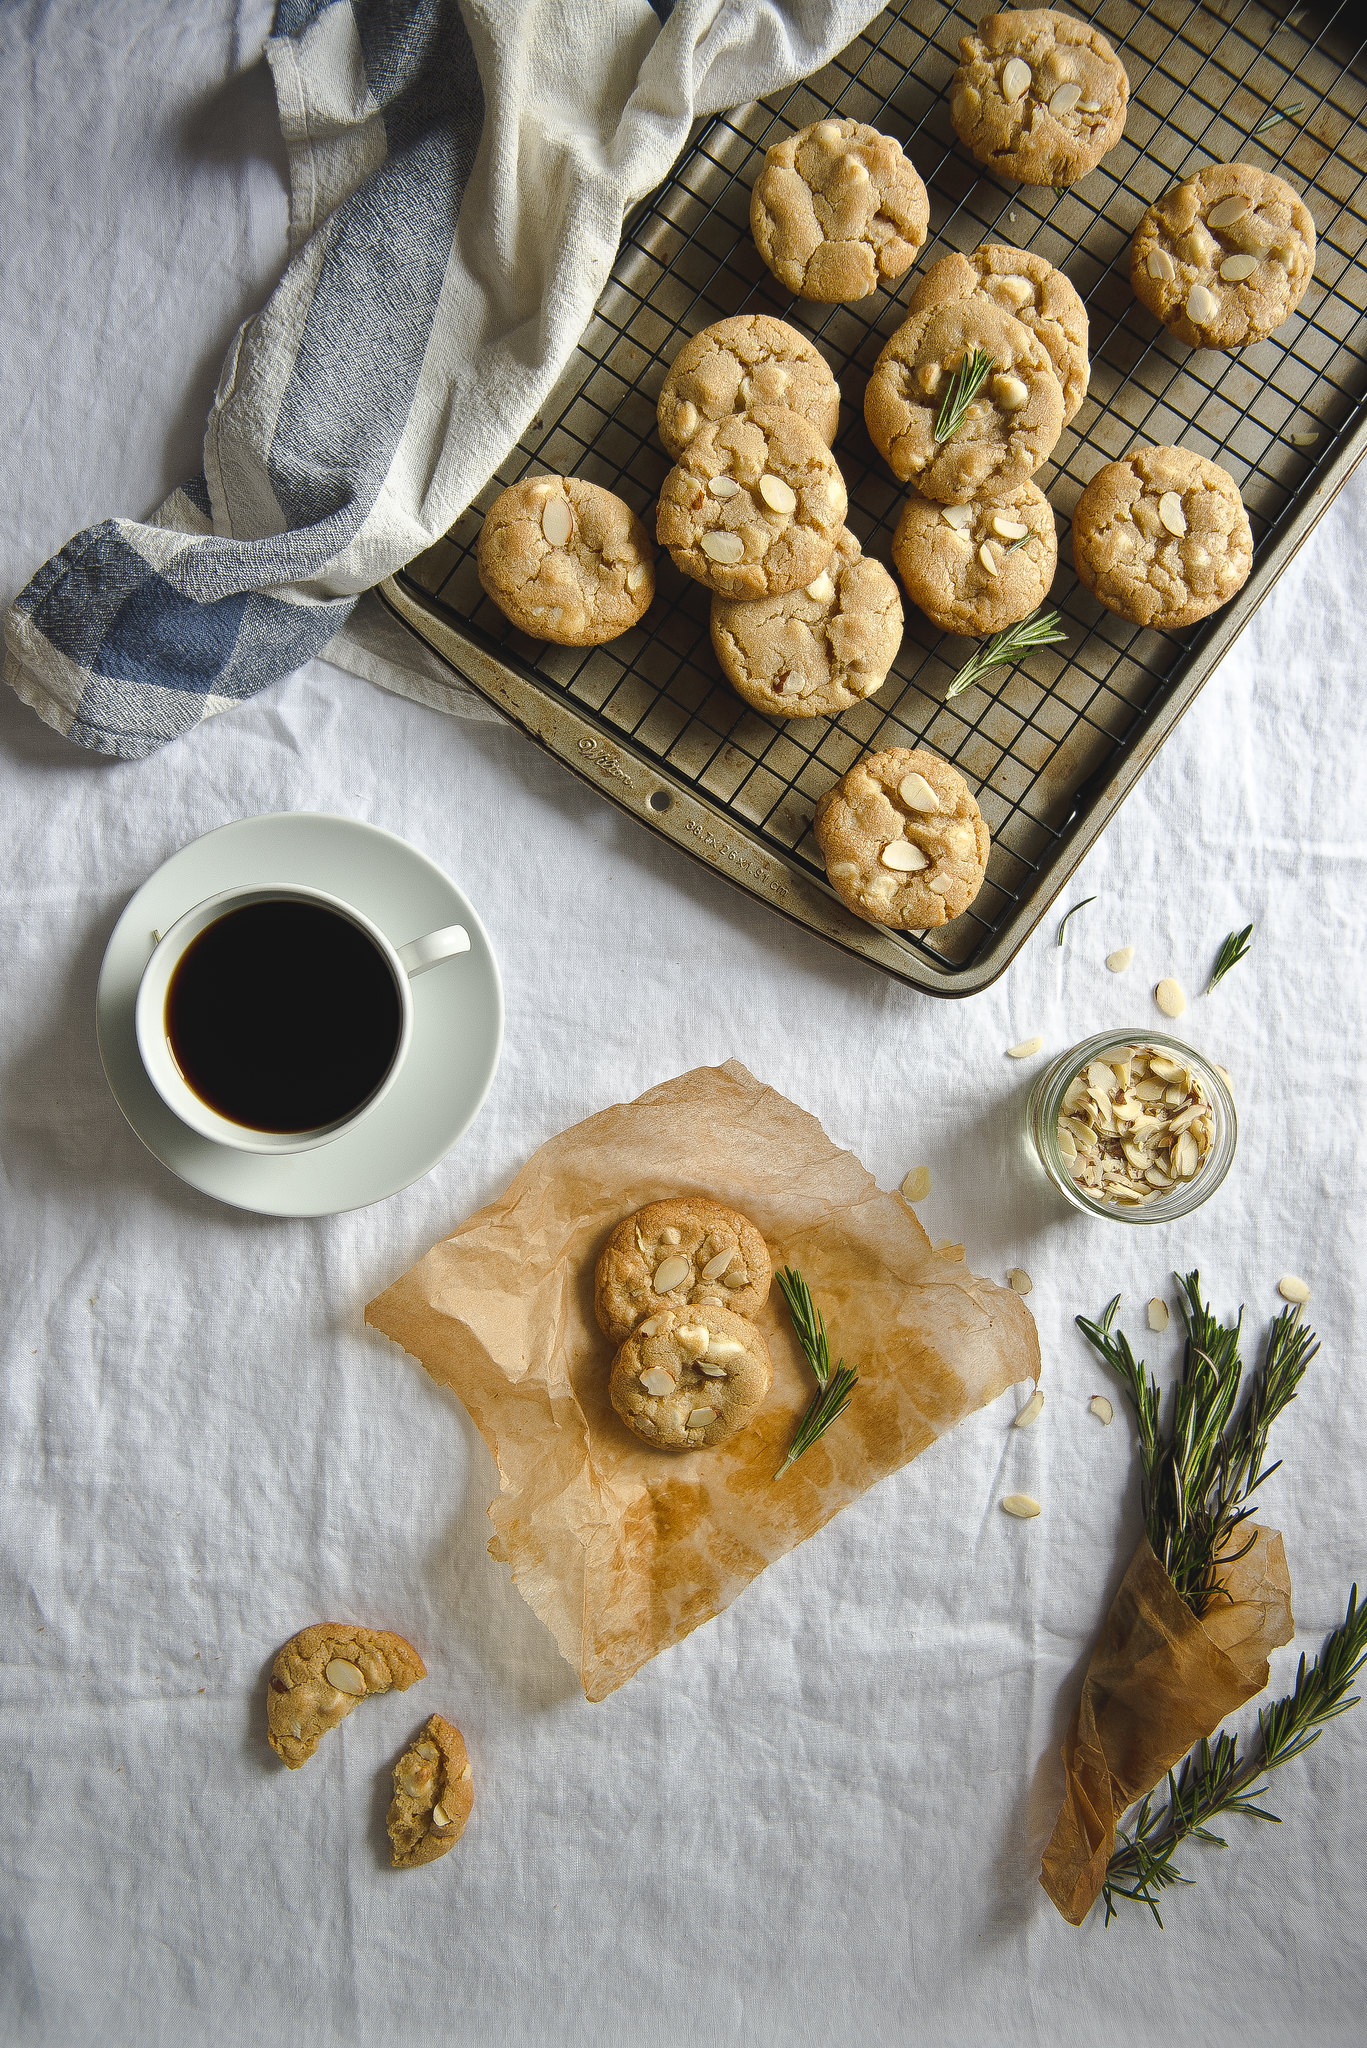 Rosemary, almond, & white chocolate cookies.